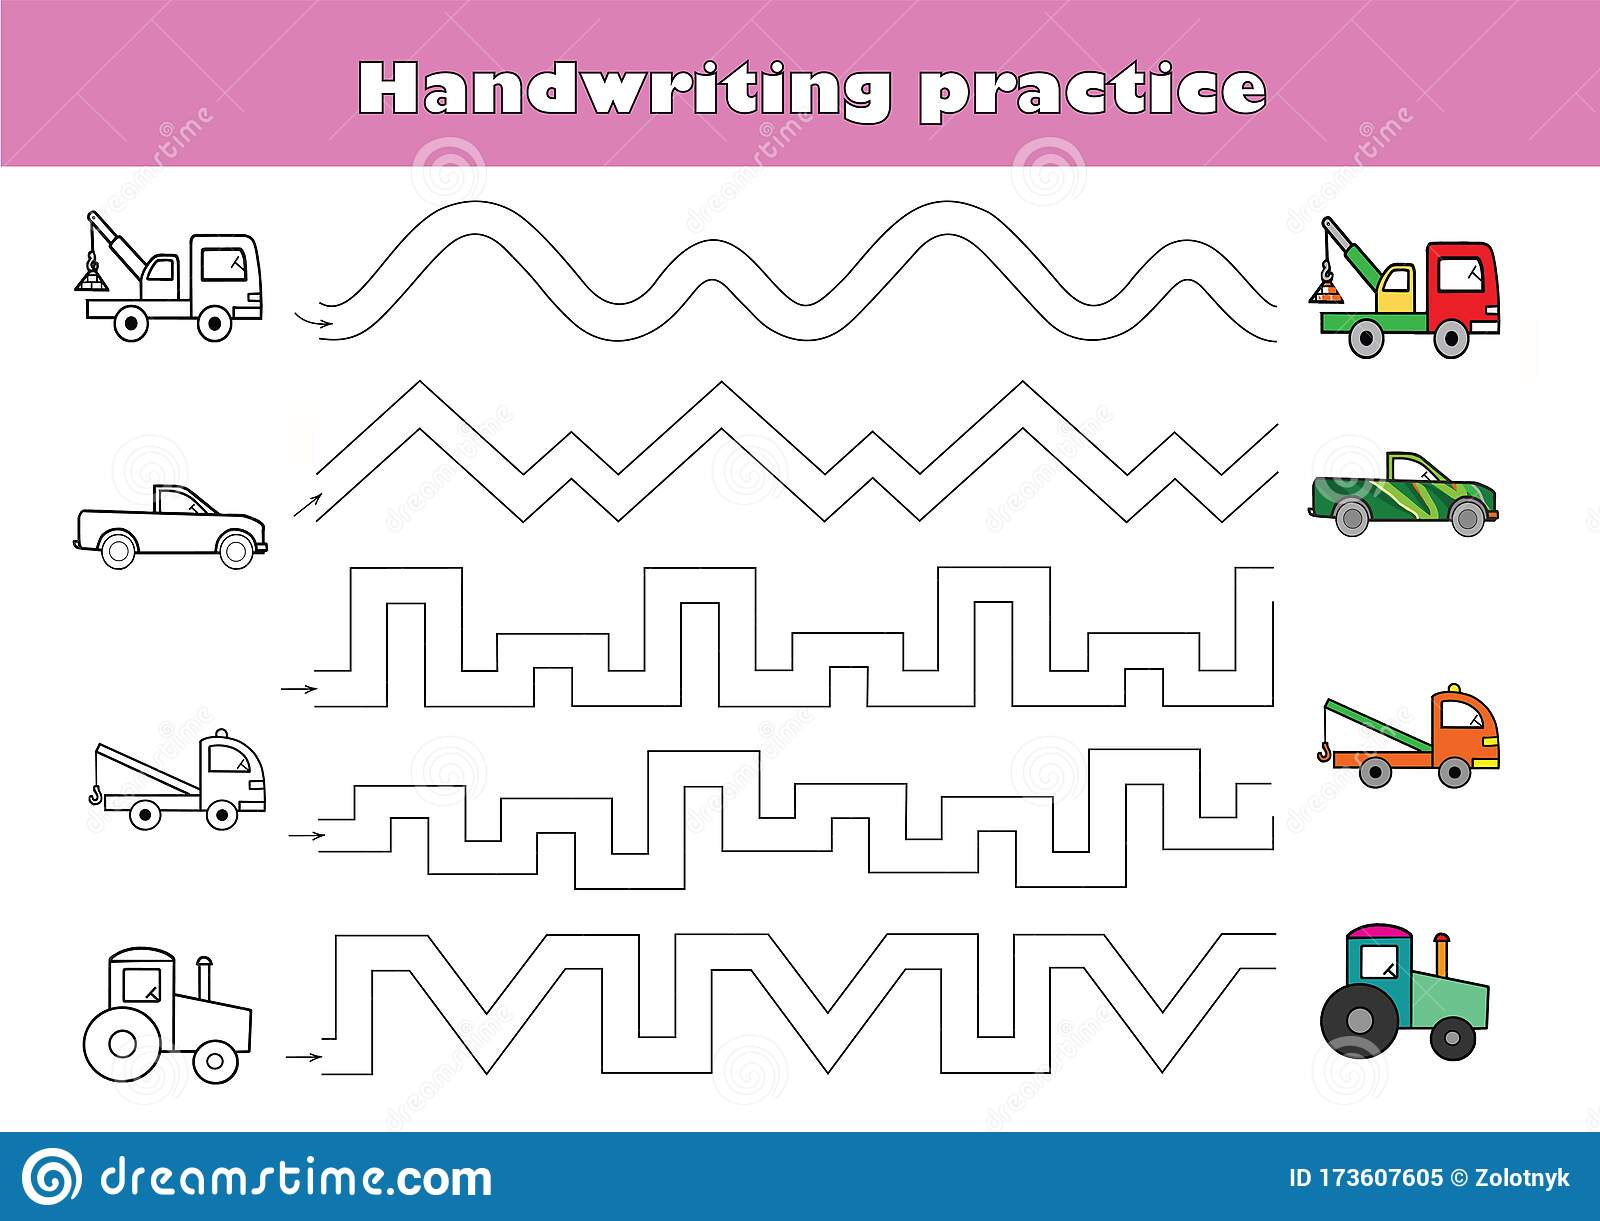 Lhandwriting Practice Sheet Educational Children Game